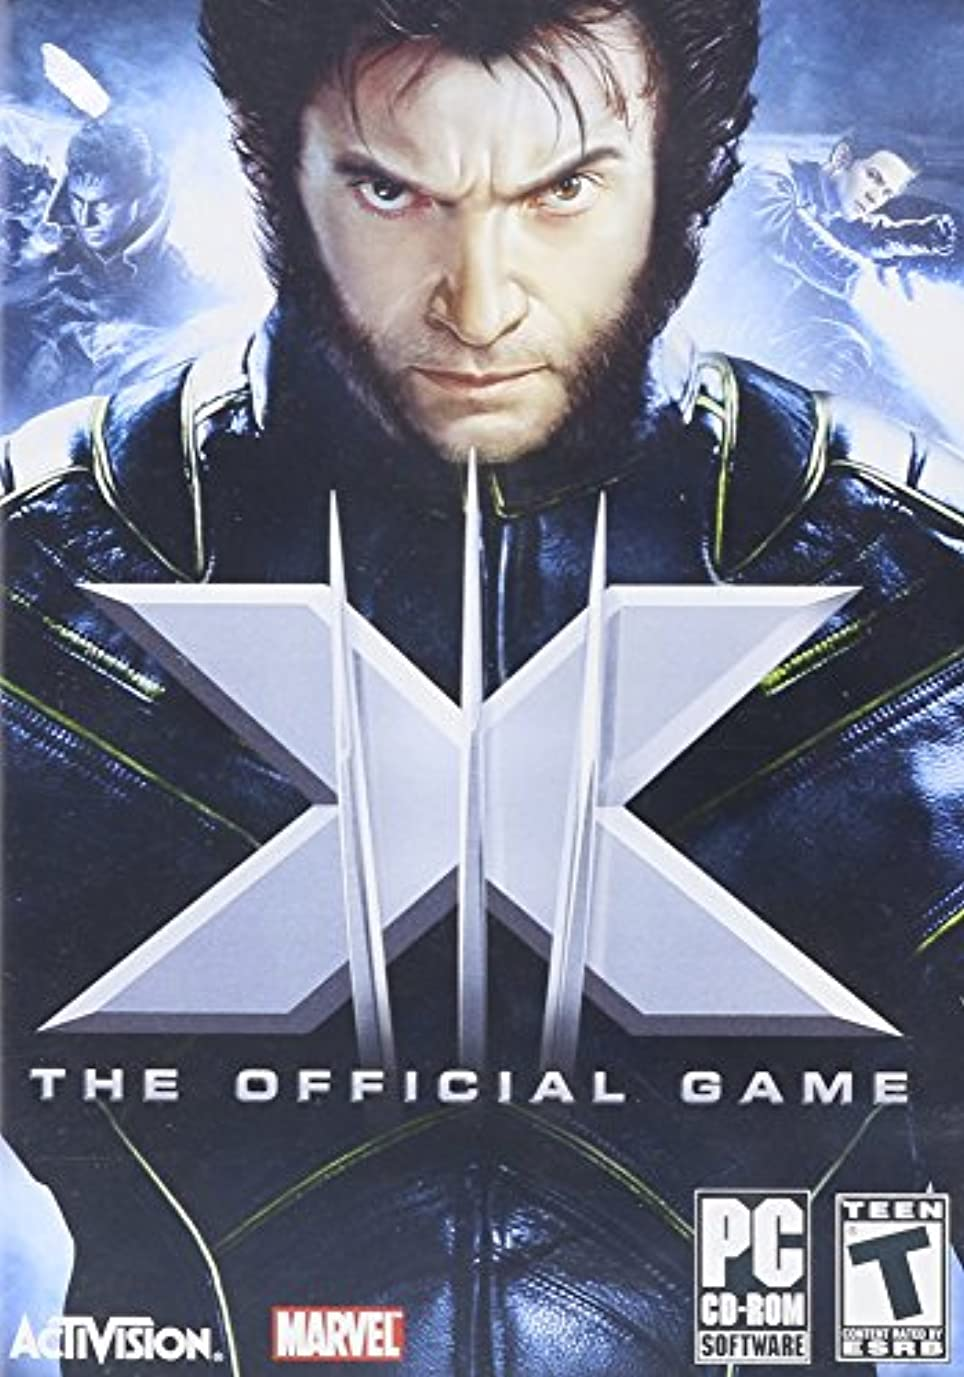 レンジ病気の宿題X-Men III - The Official Game Video Game for PC (輸入版)